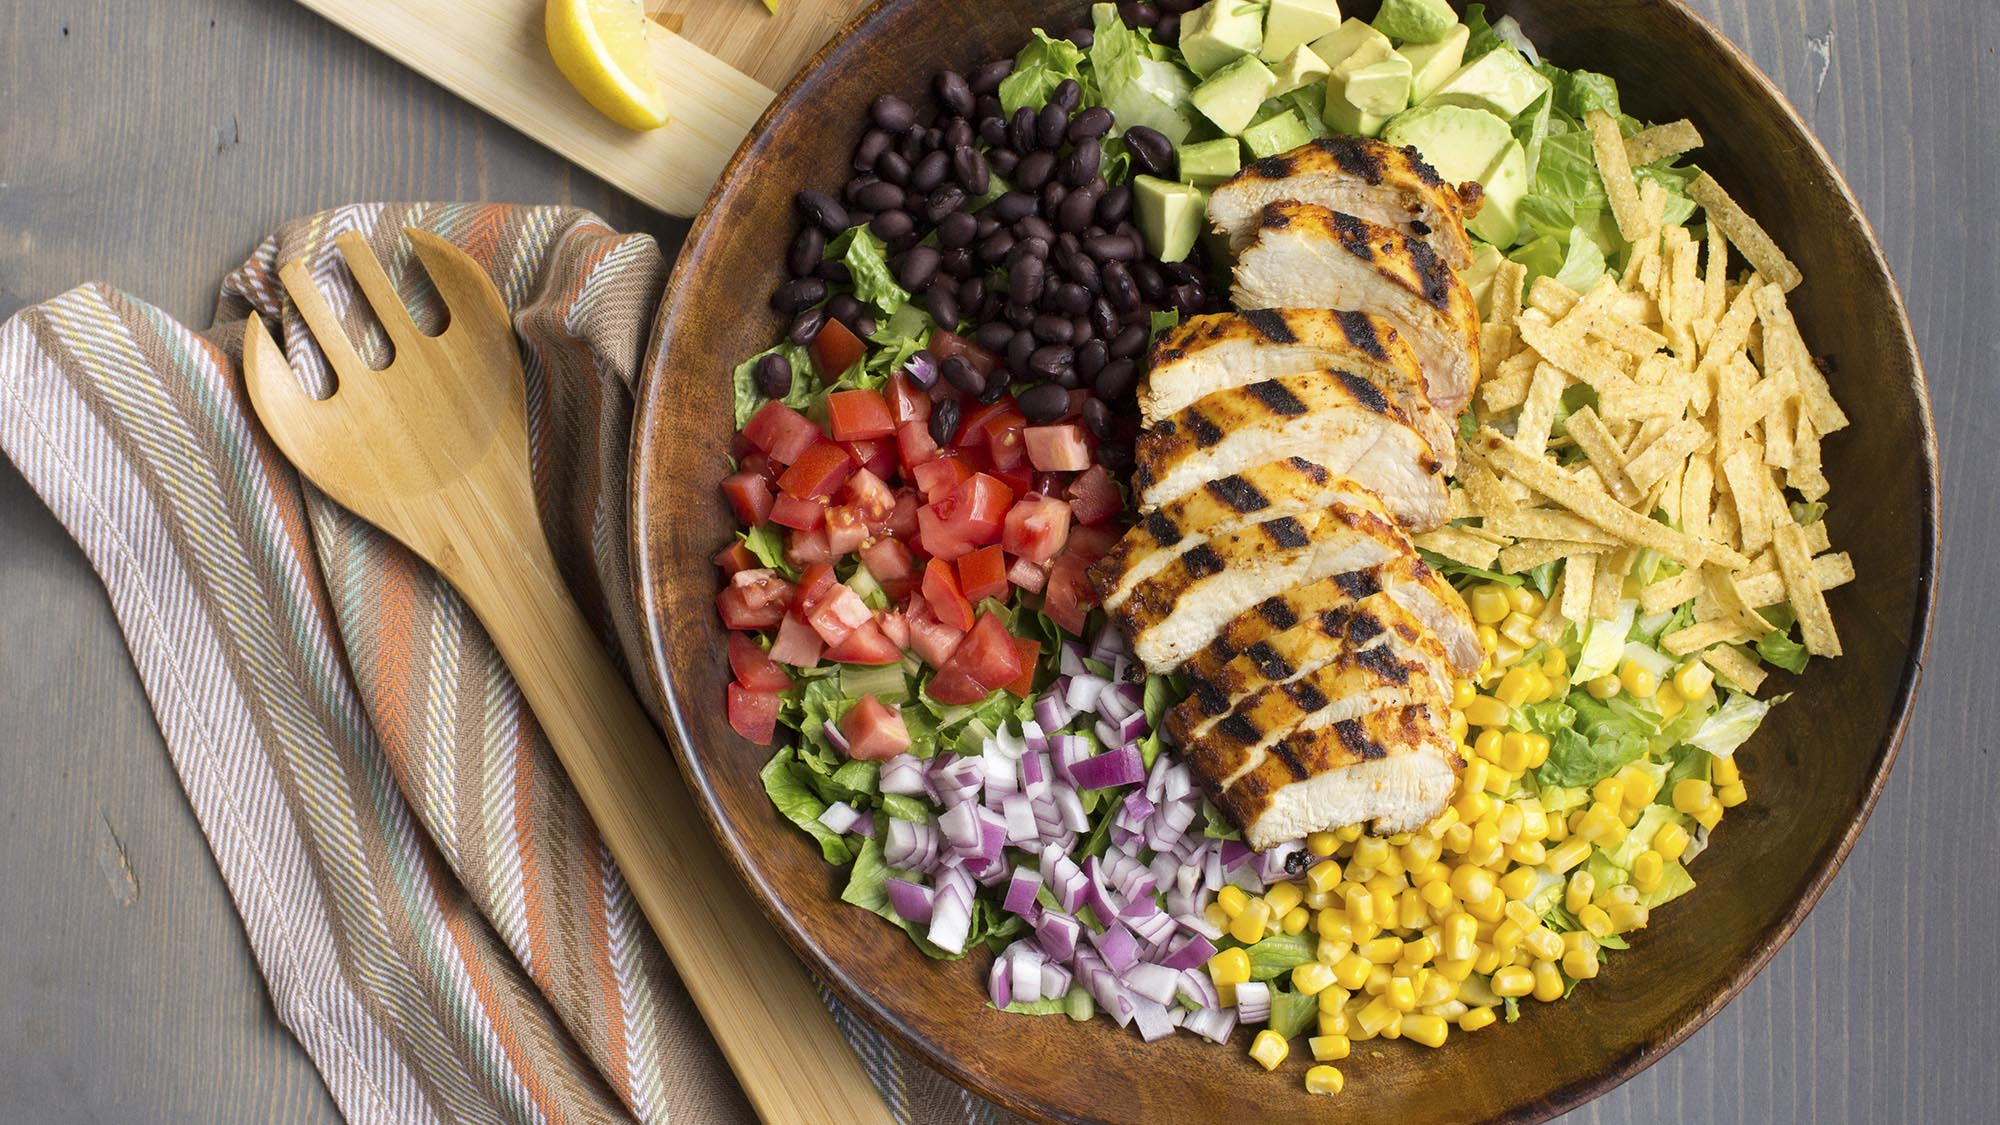 Southwest_Chicken_Salad_2000x1125.jpg